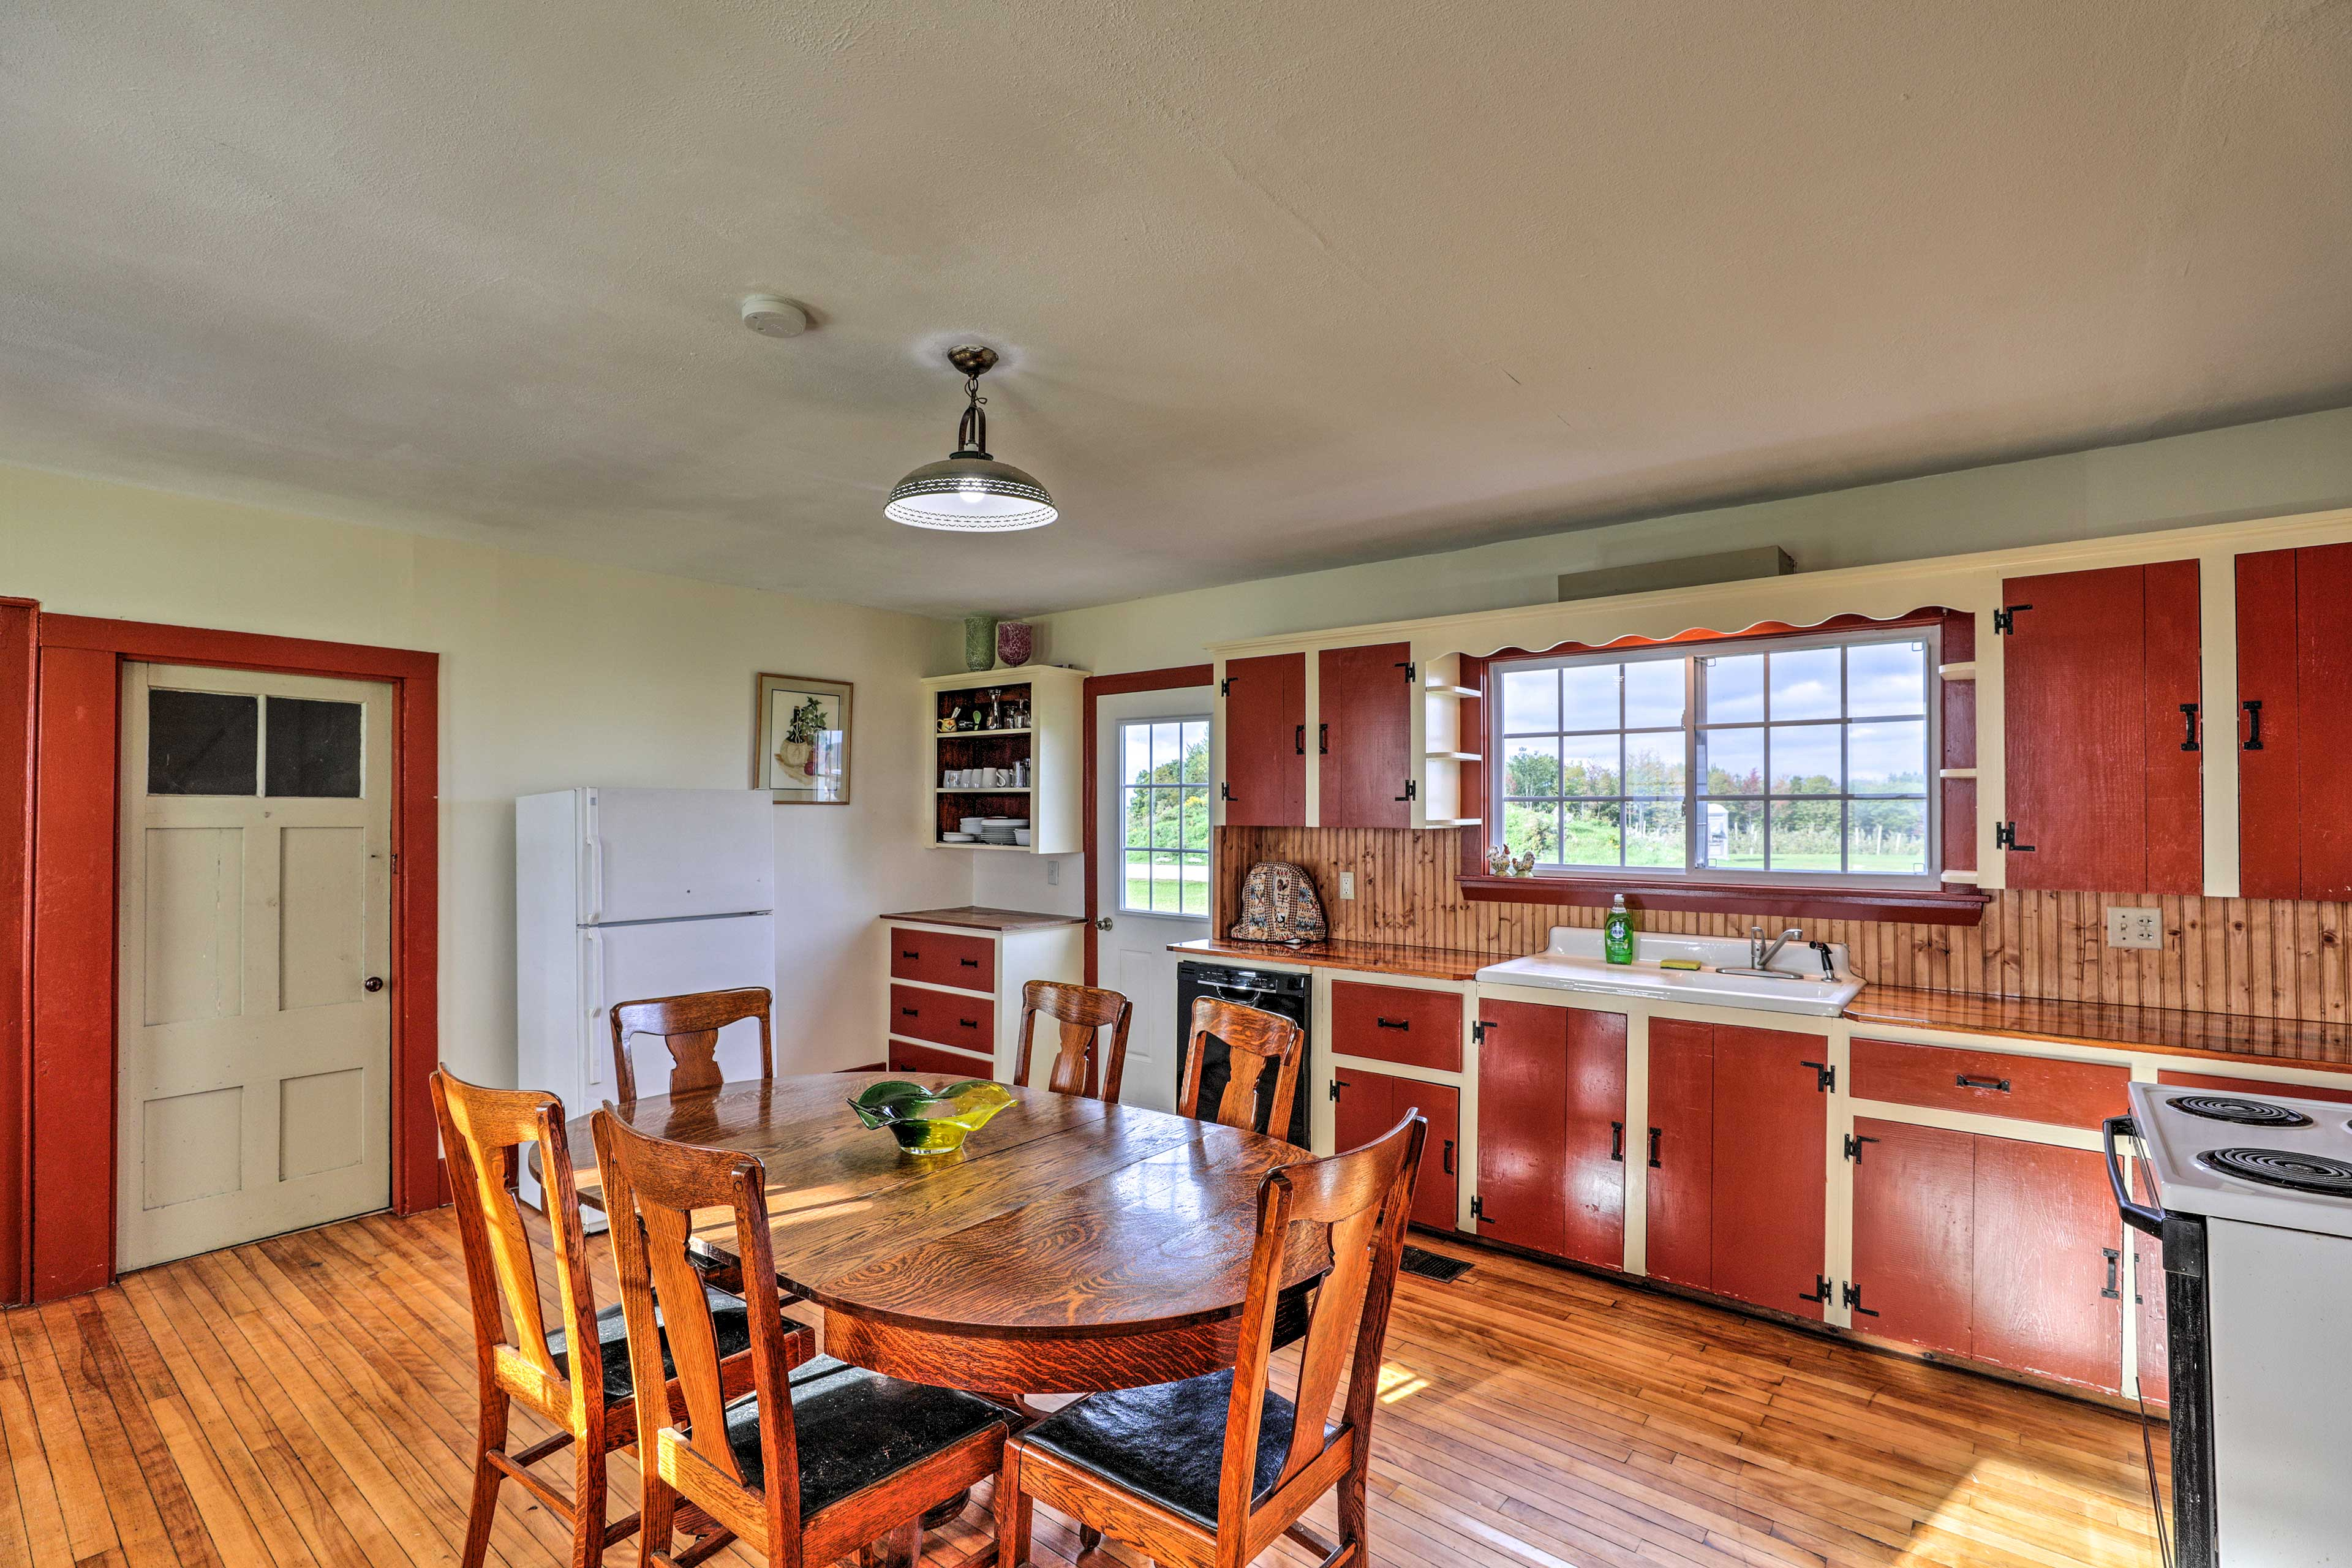 The fully equipped kitchen has everything you need for your favorites.